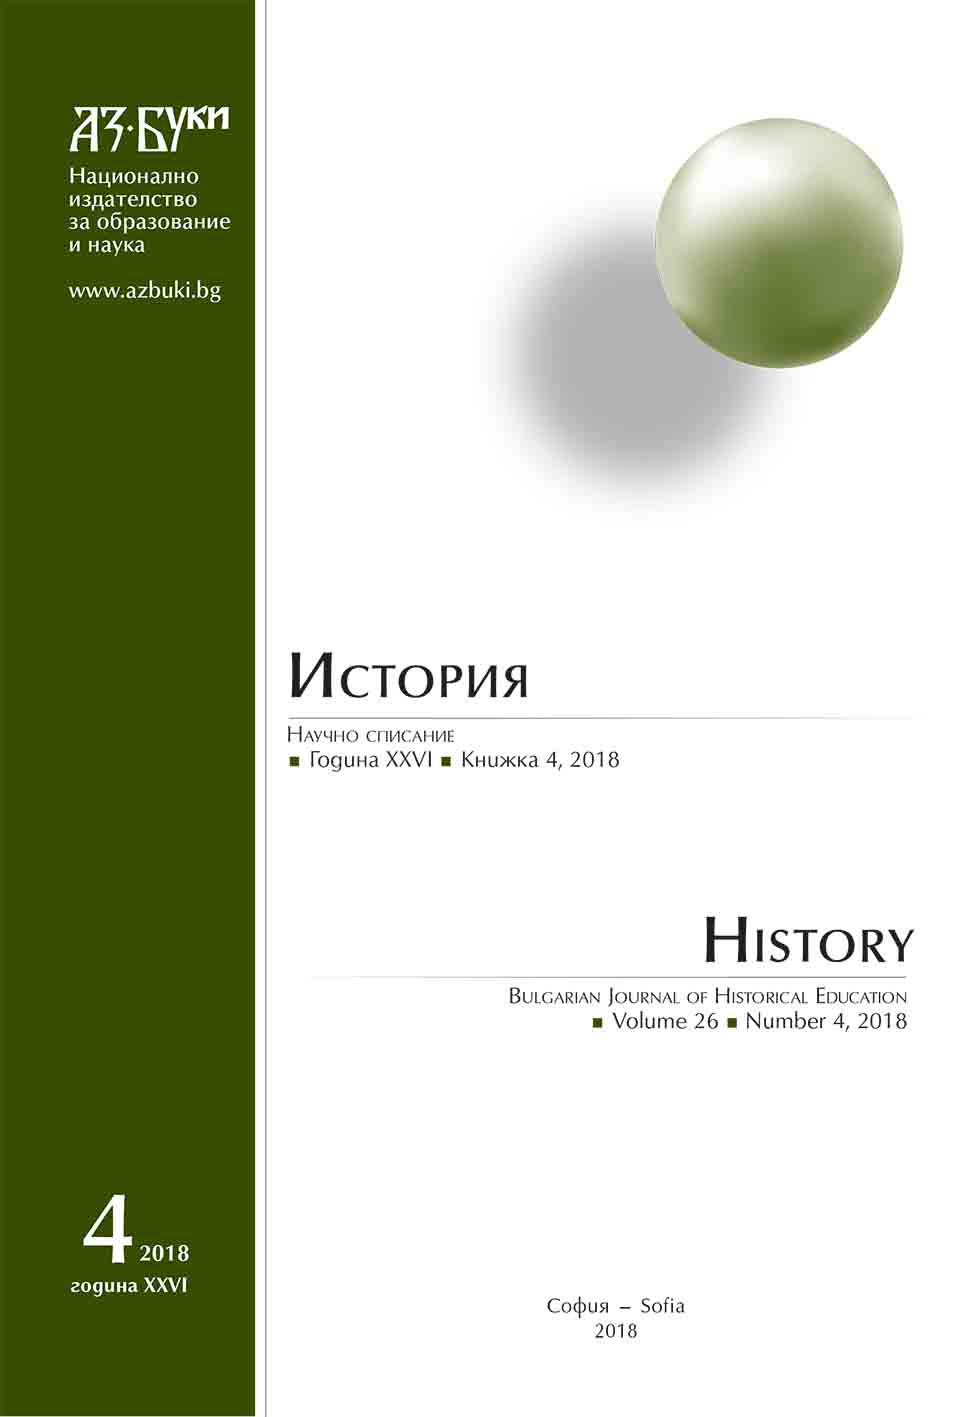 The  Education in Community Centers in Bulgaria during the Period 1918 – 1944 Cover Image